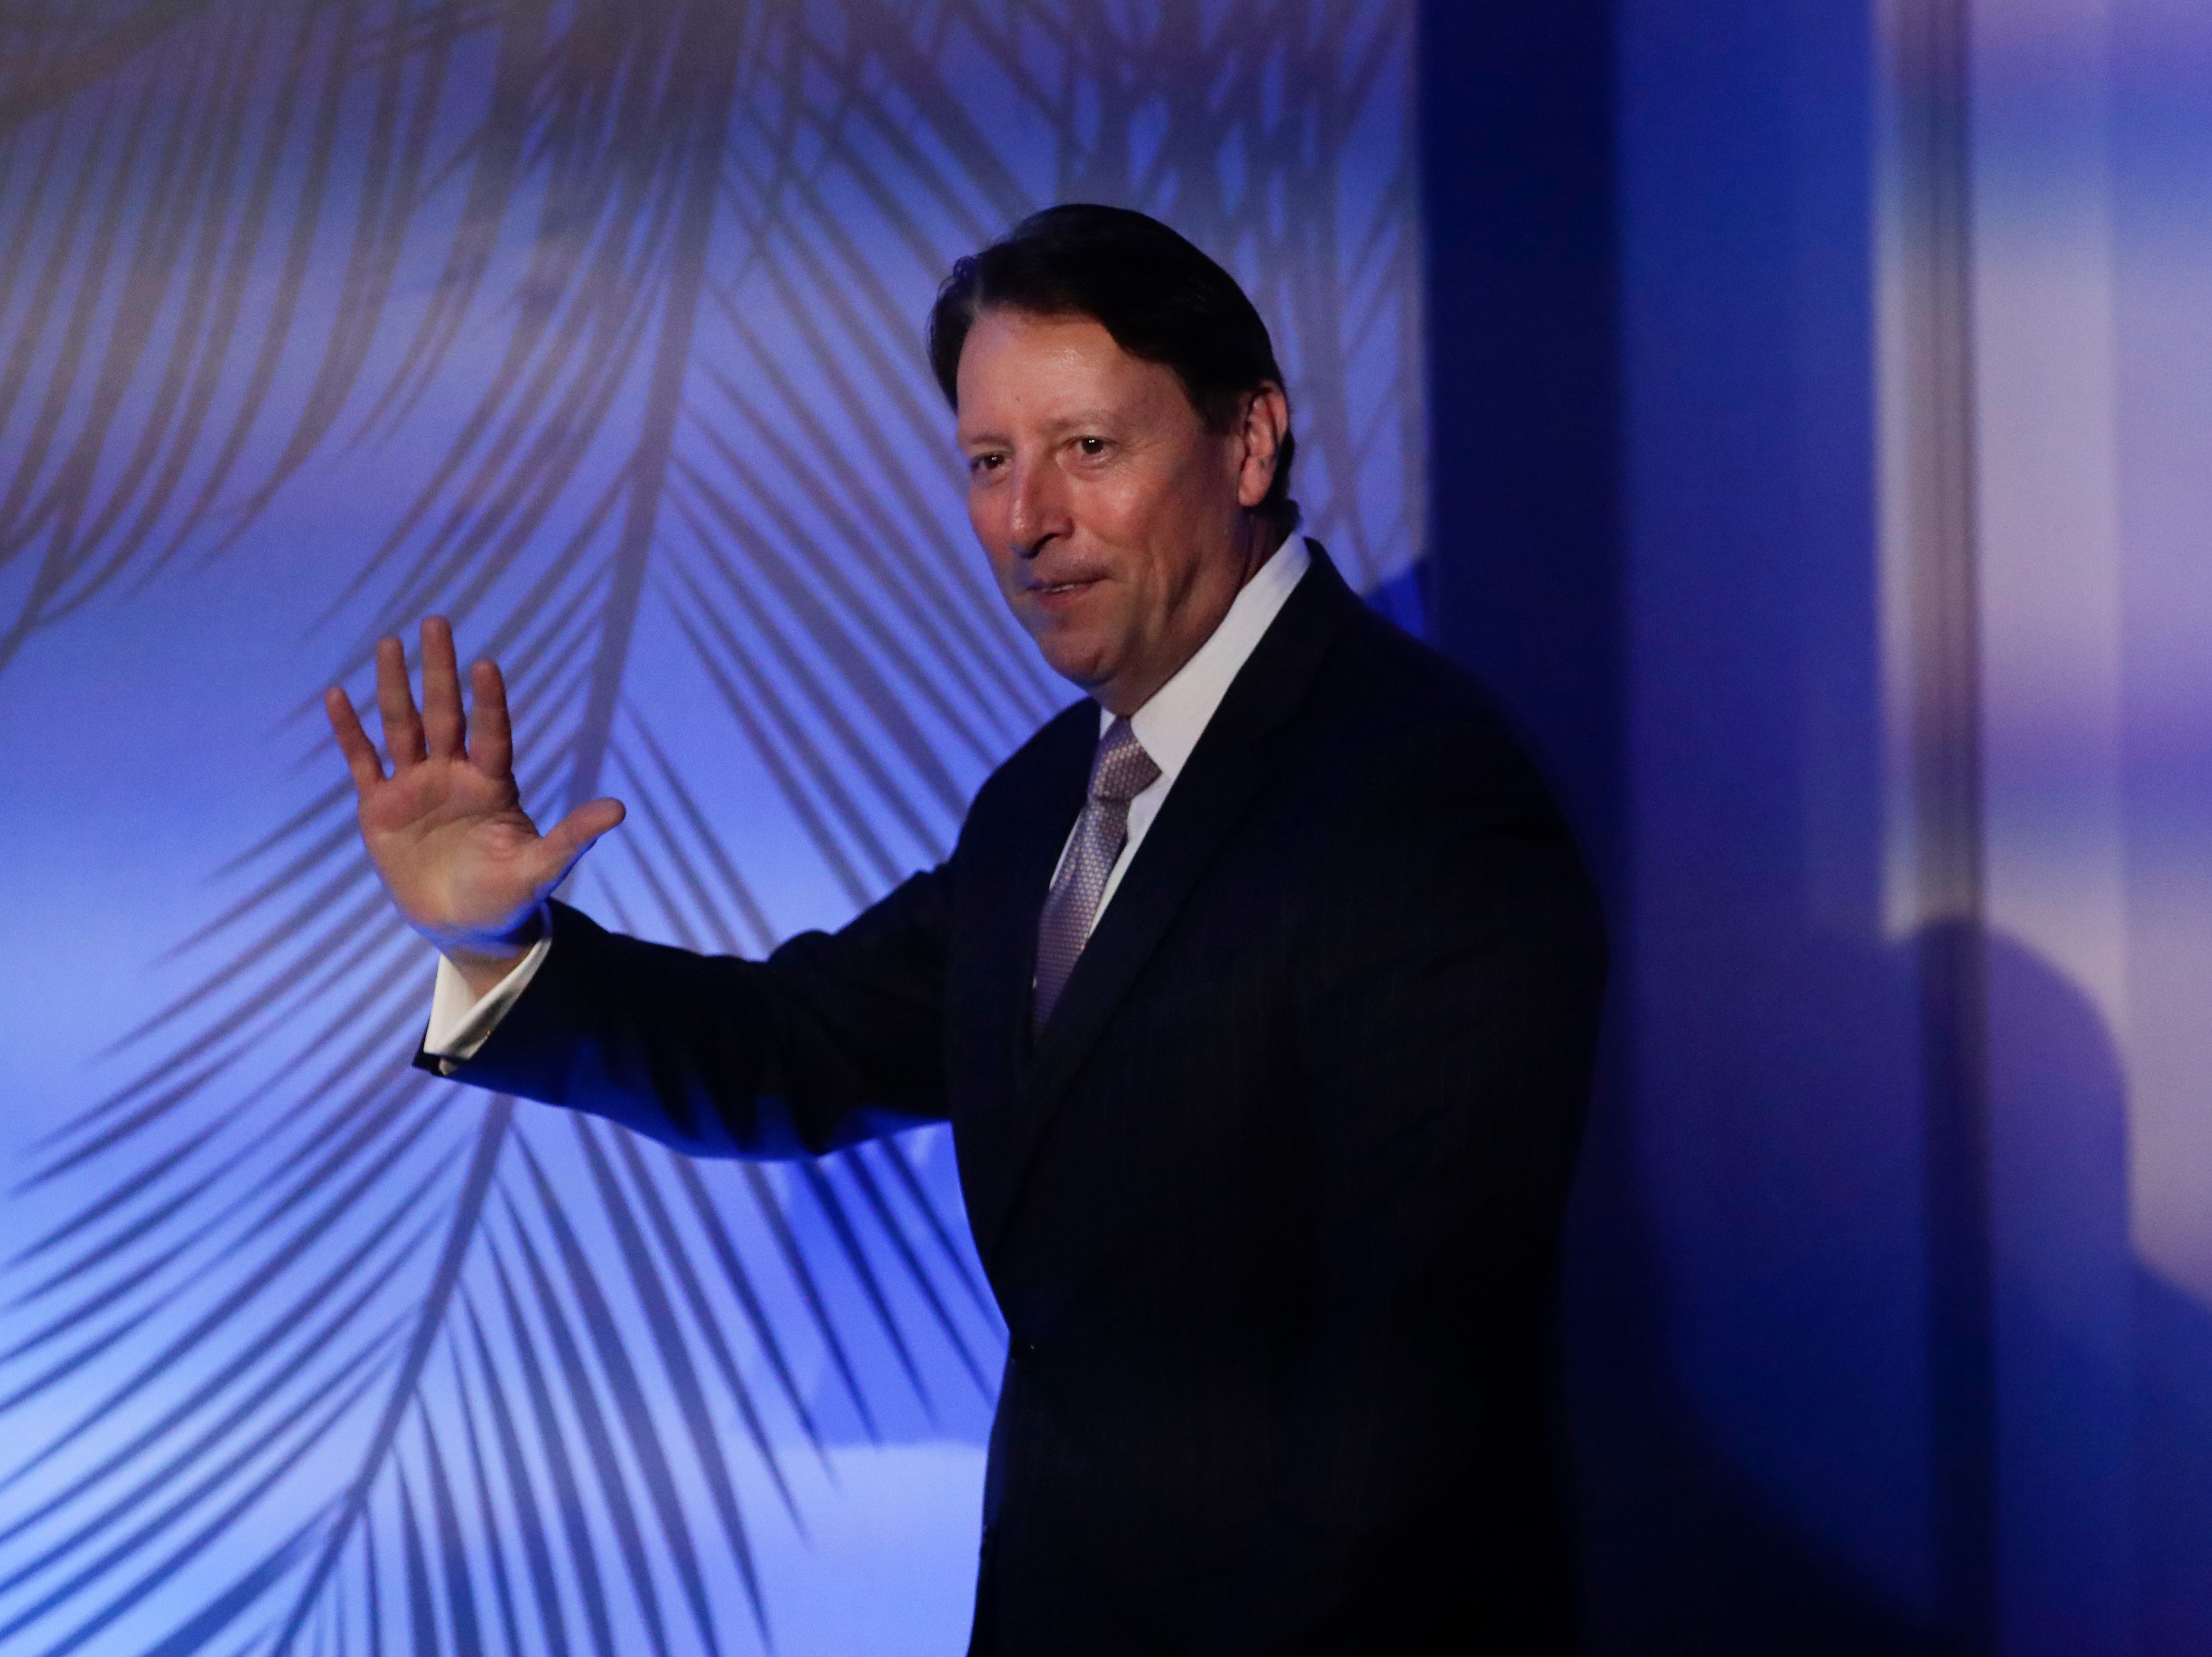 Senate President Bill Galvano takes the stage during the Bold Vision for a Bright Future: Thought Leaders Luncheon in the University Center Club at Florida State University Monday, Jan. 7, 2019.